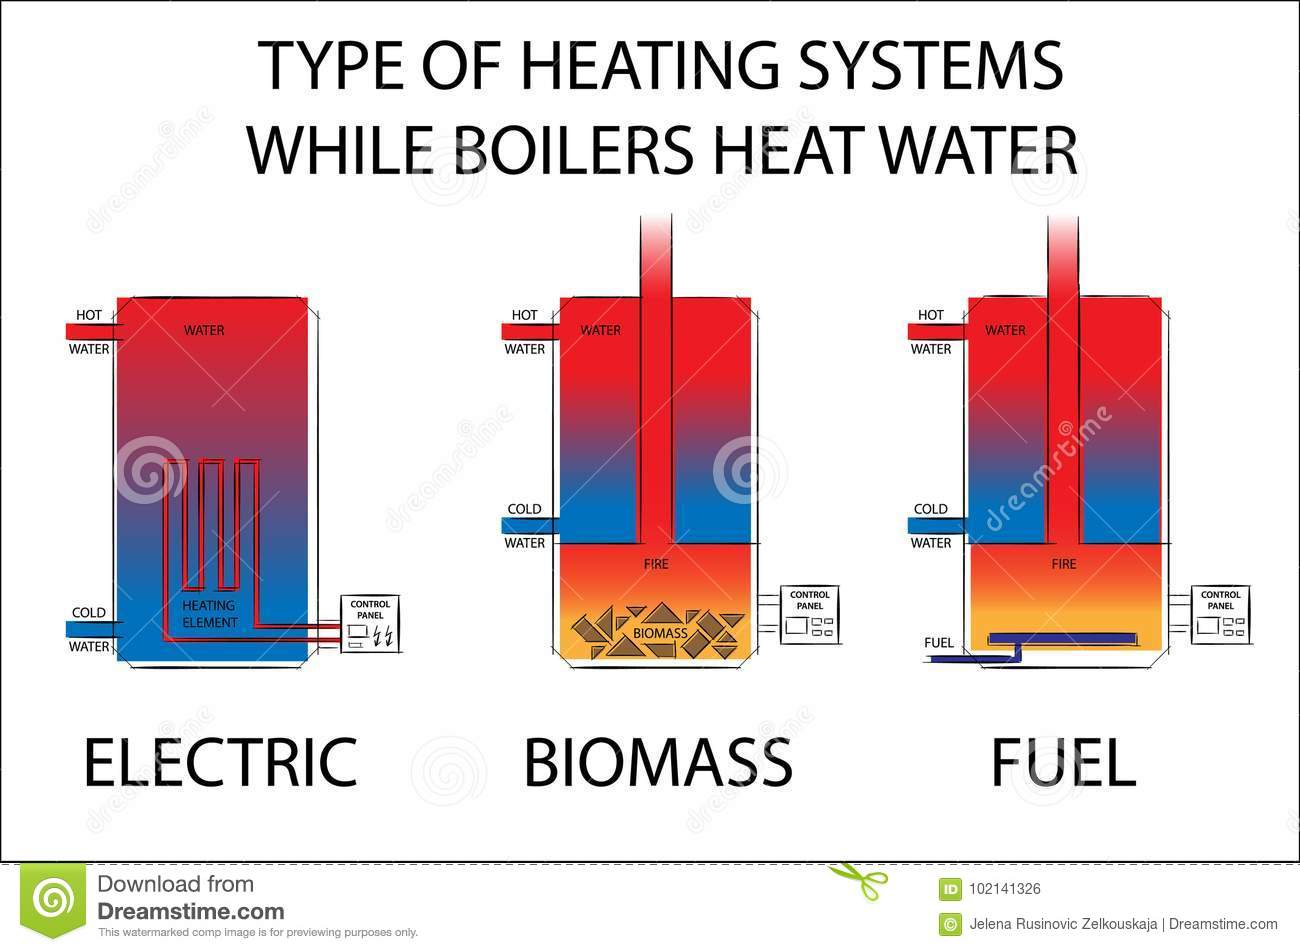 Biomass cartoons illustrations vector stock images for Type of heating systems